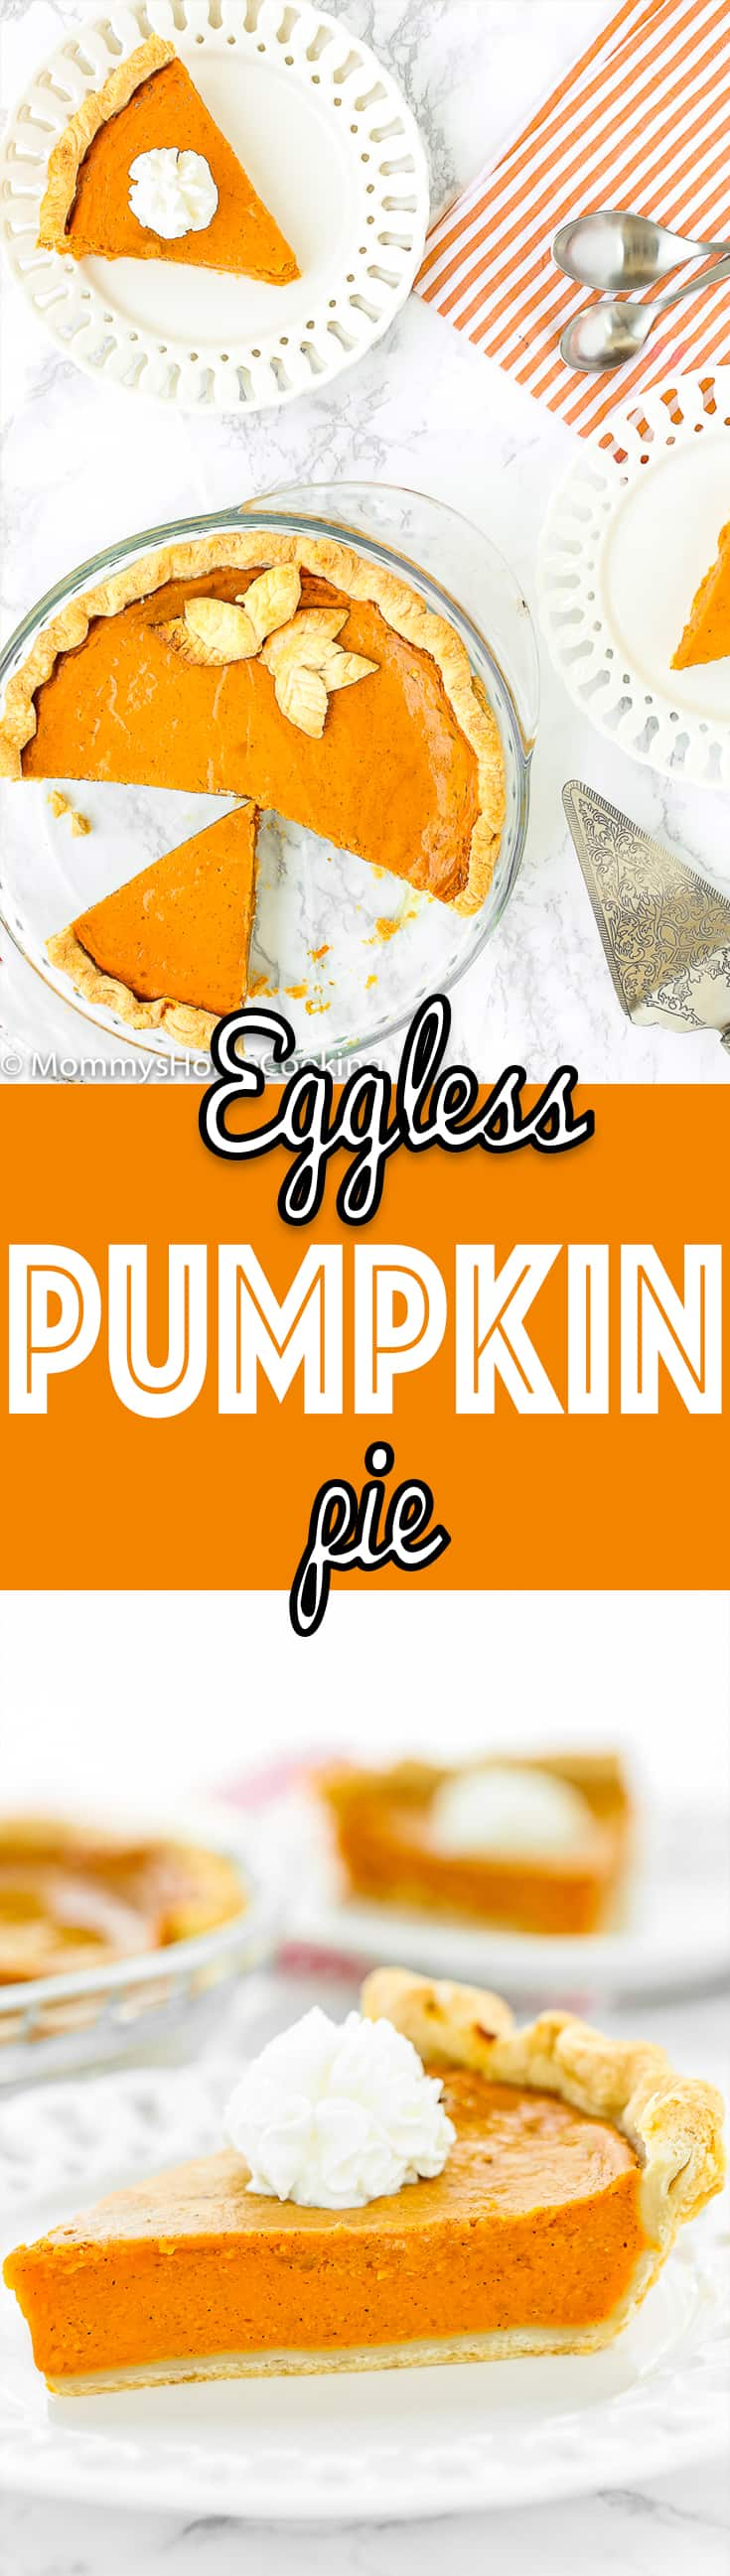 This Easy Eggless Pumpkin Pie is rich, smooth and spiced! Seriously amazing. It's super easy to make, too! Definitely a MUST-MAKE for the holidays. http://mommyshomecooking.com